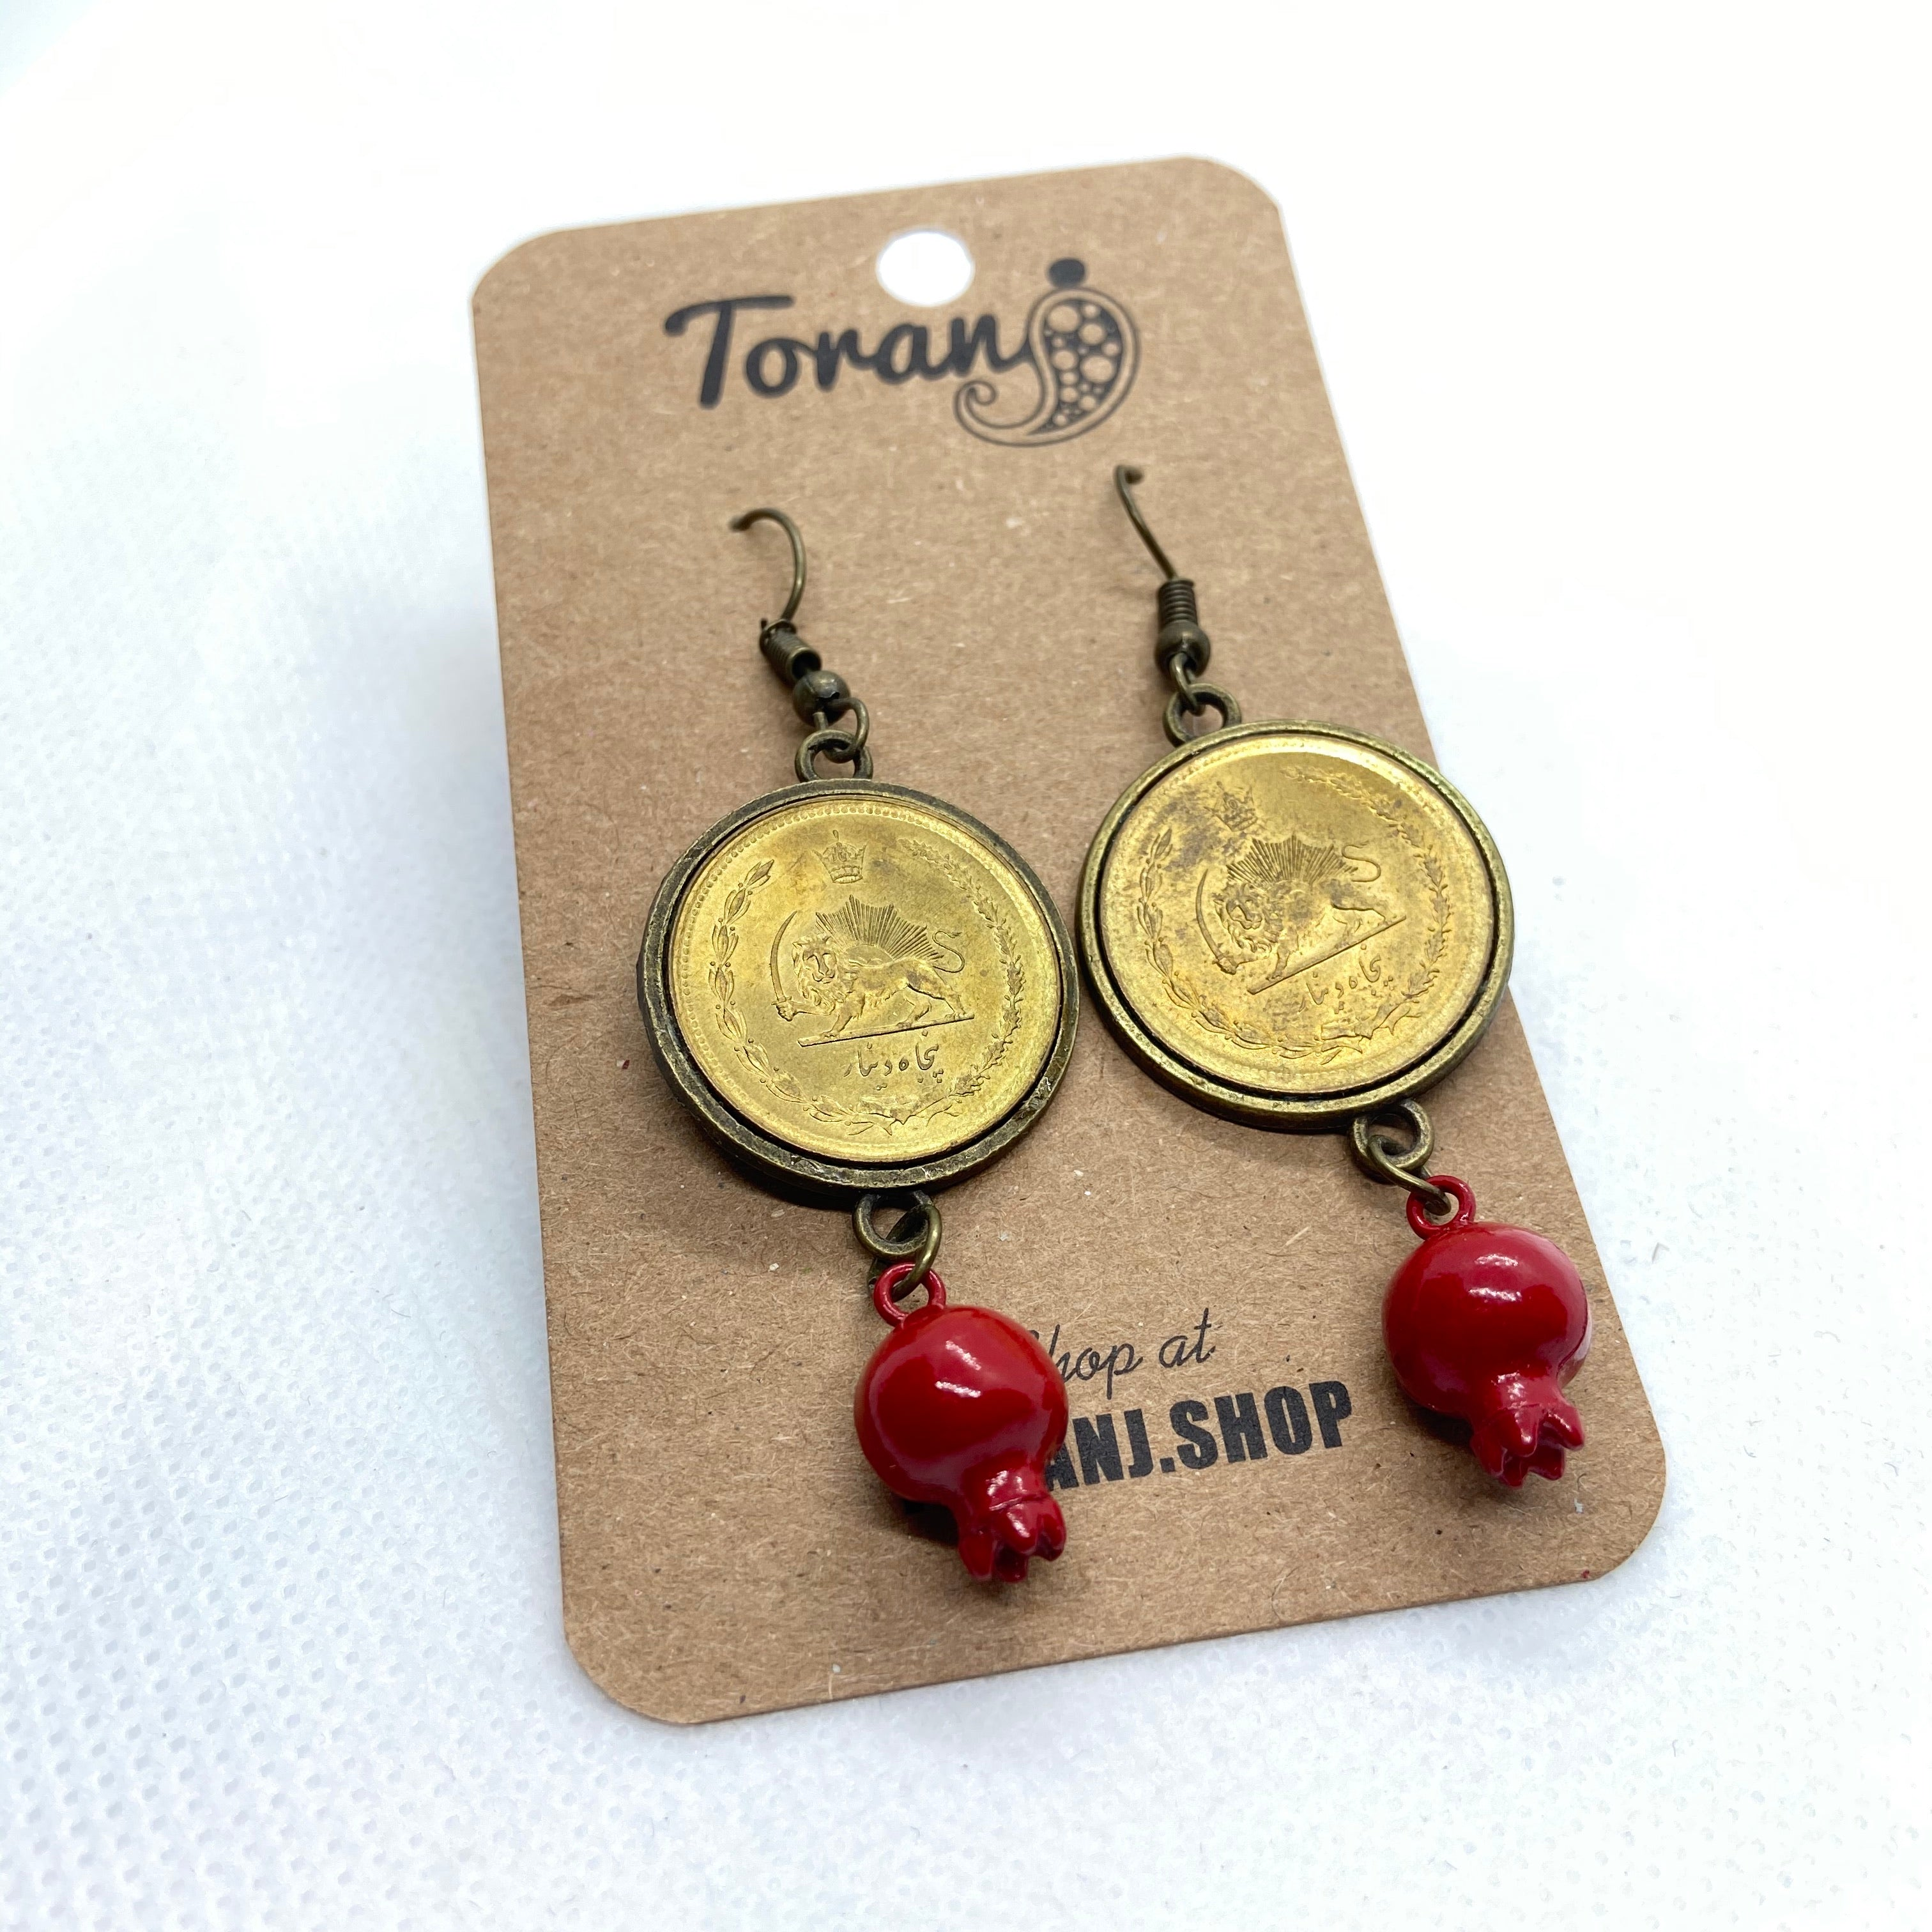 50 Dinar Coin Earring with Pomegranate